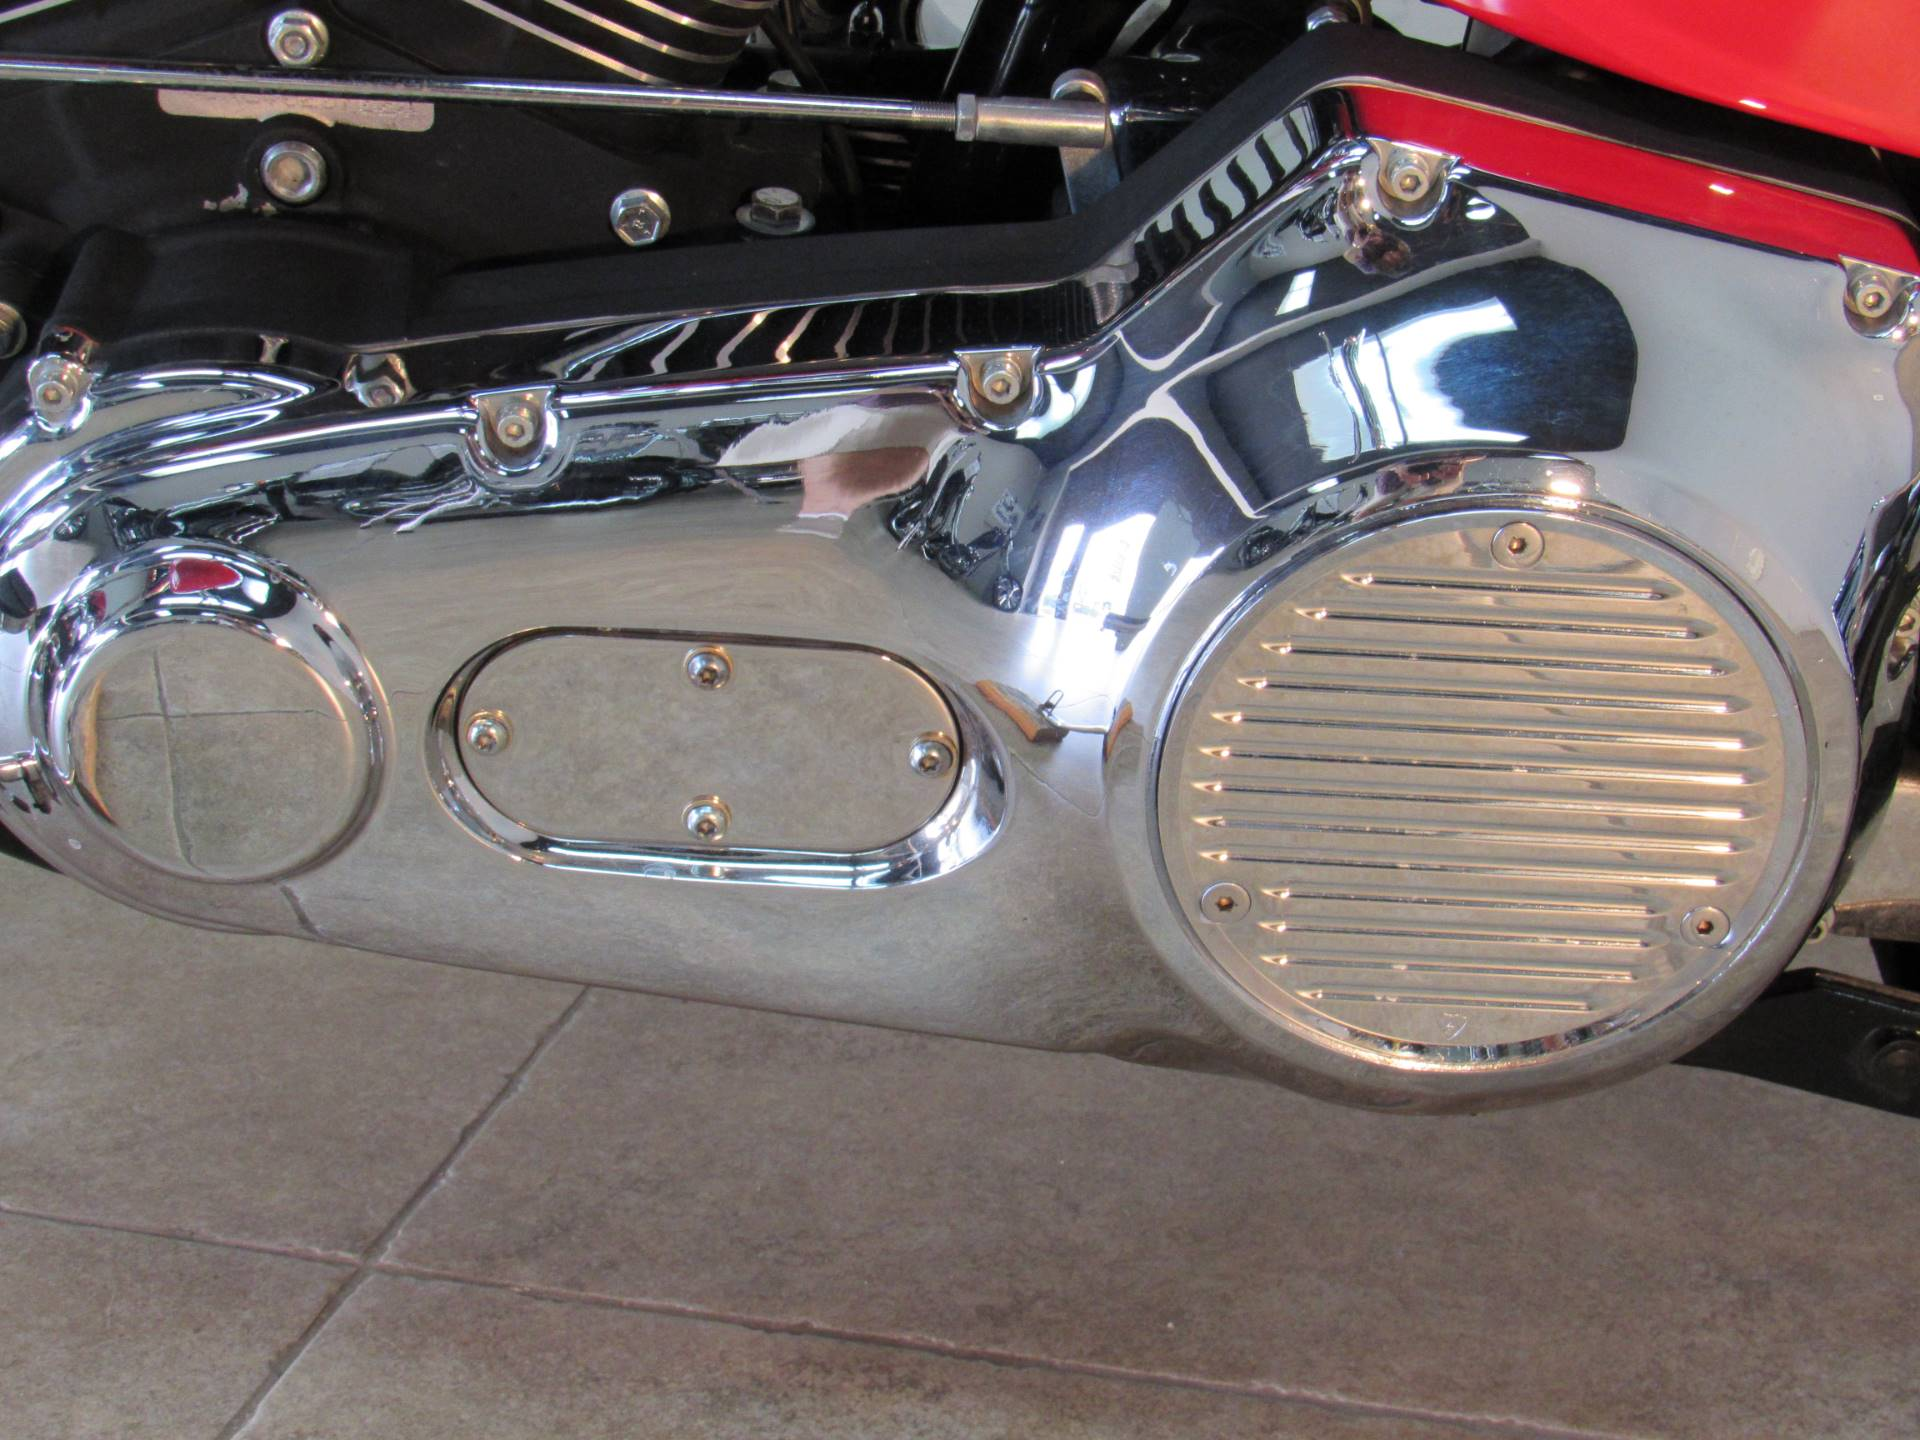 1997 Harley-Davidson SOFTAIL CUSTOM FXSTC in Temecula, California